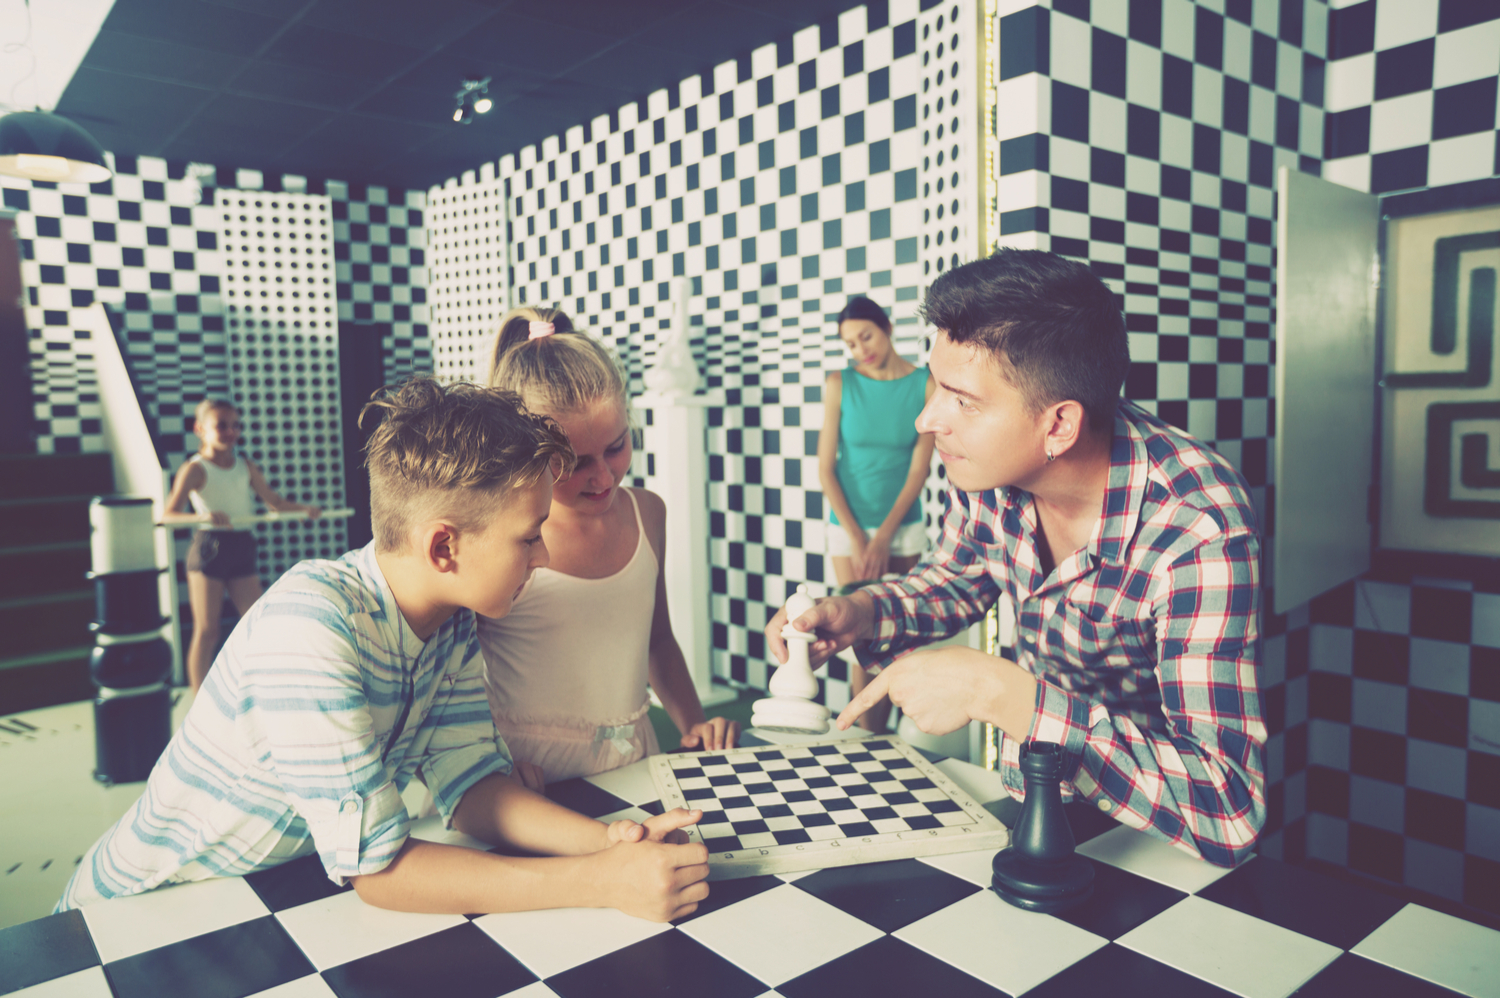 Young family huddled over a chessboard in a black and white escape room, trying to solve a puzzle